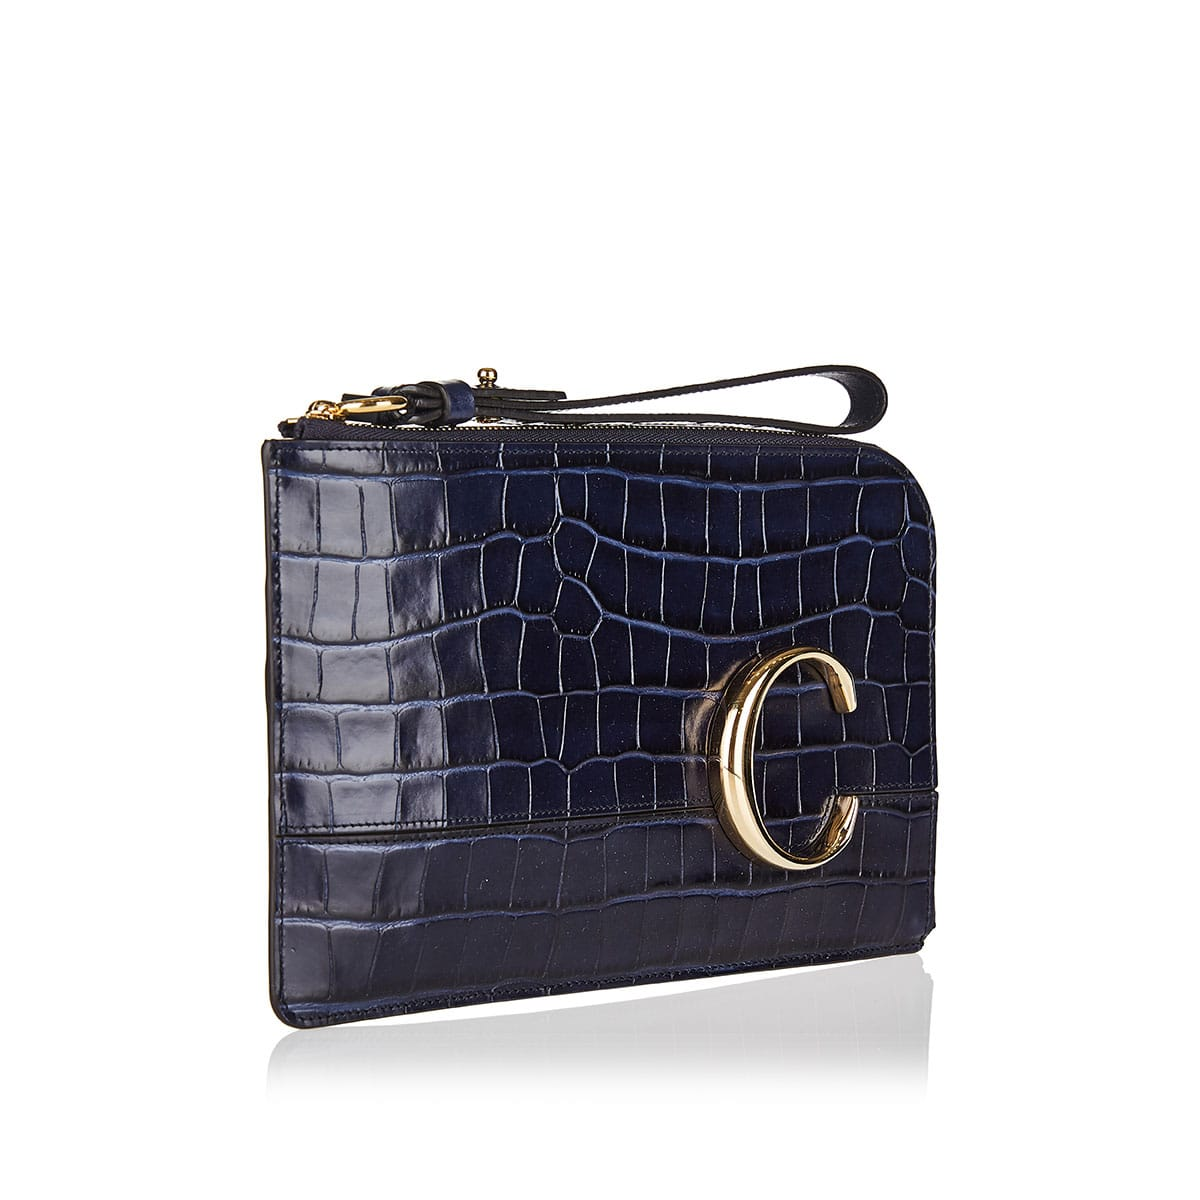 The C croc-effect leather pouch